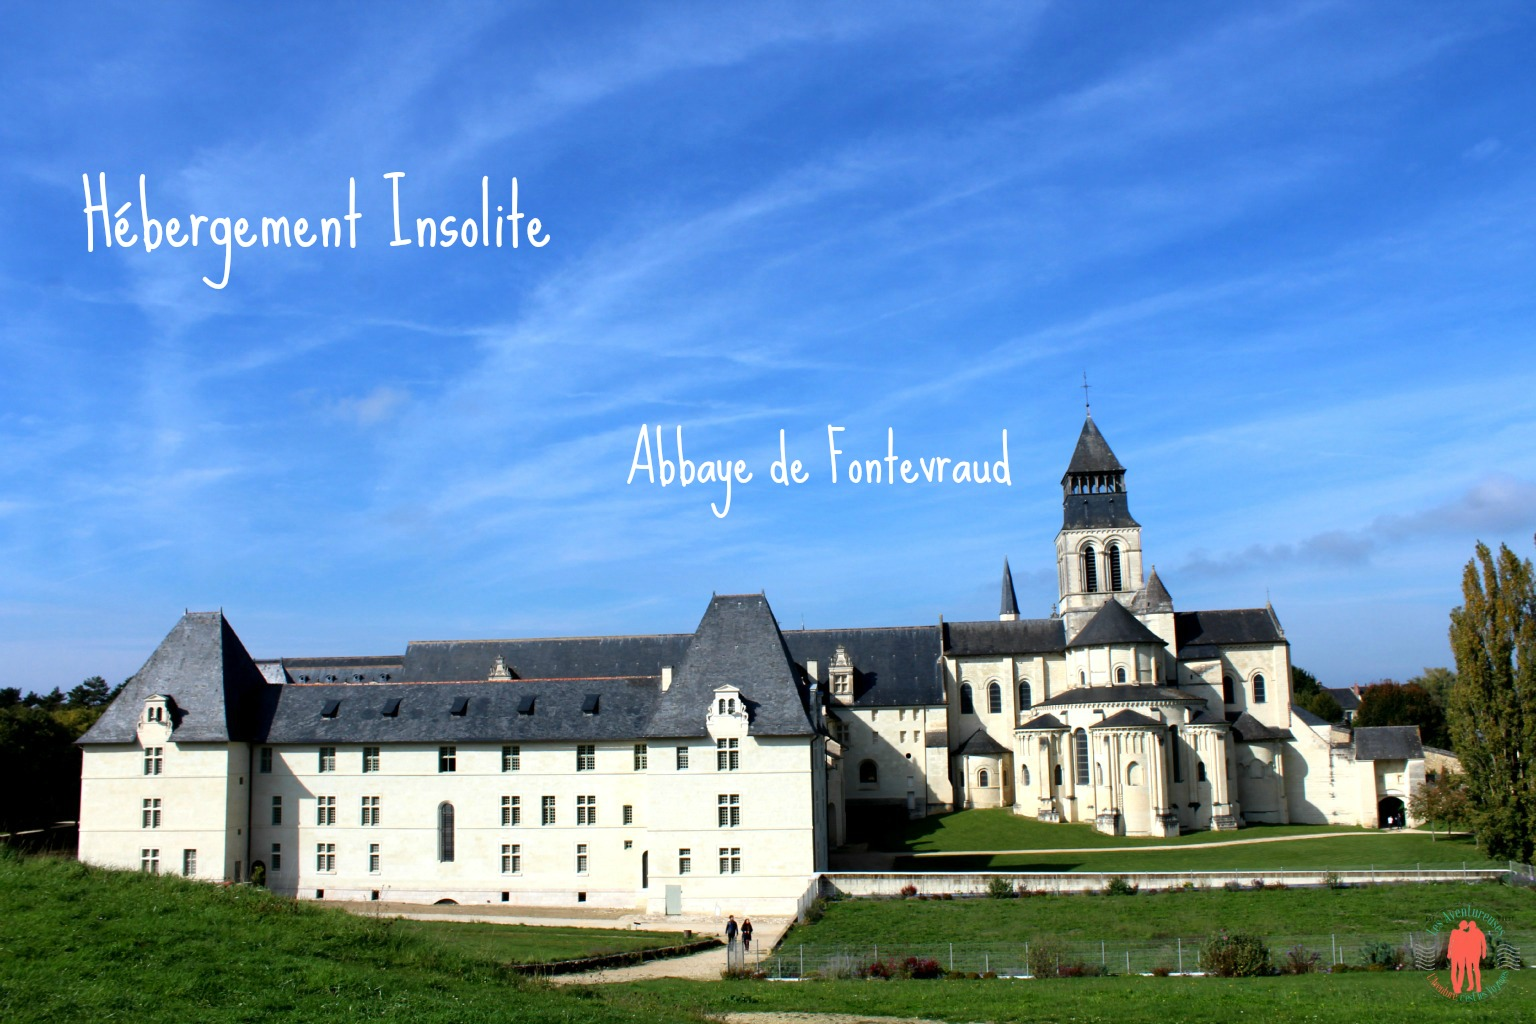 abbaye de fontevraud un lieu insolite pour dormir. Black Bedroom Furniture Sets. Home Design Ideas